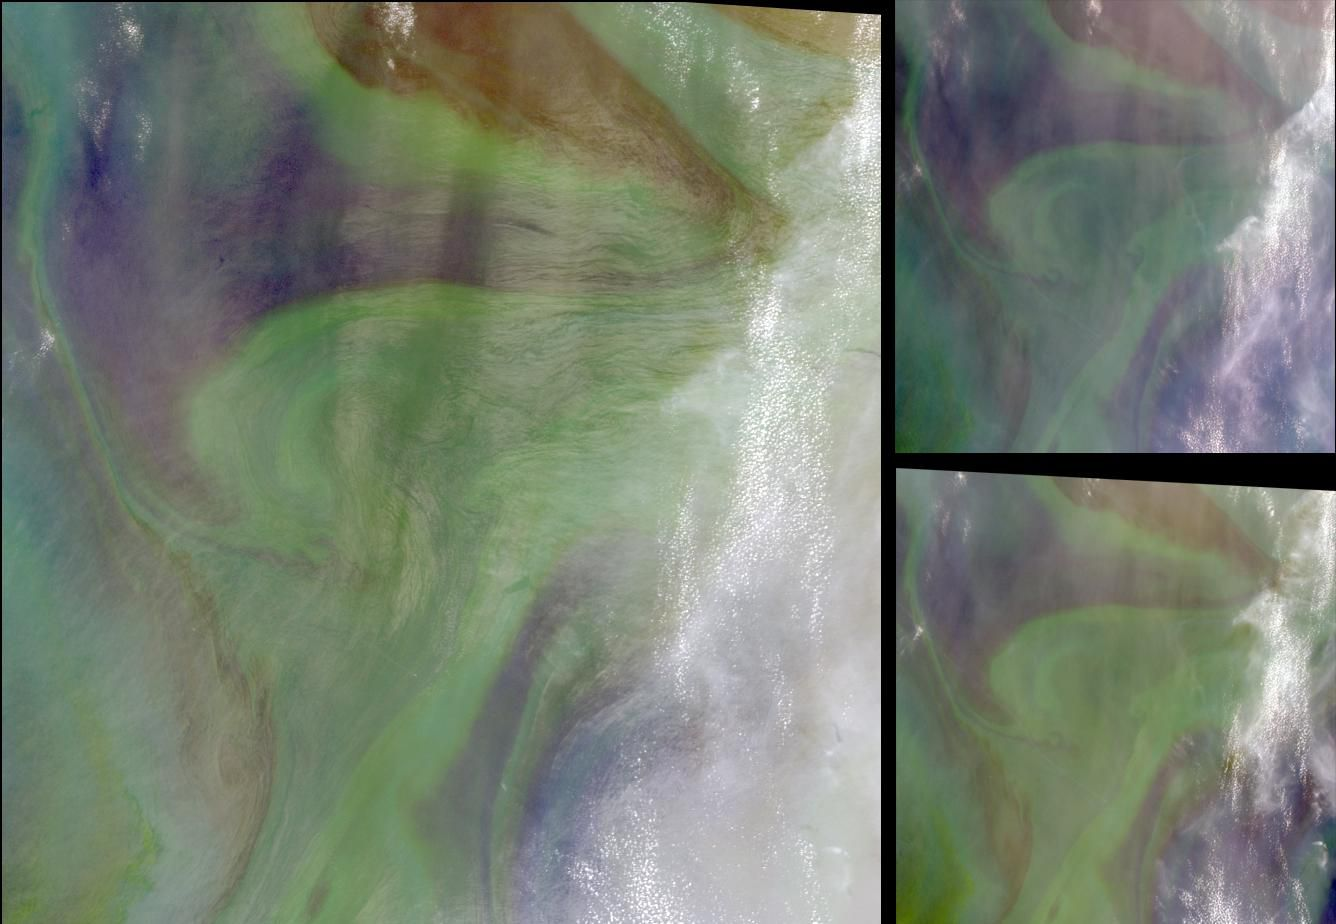 A phytoplankton bloom resulting from the natural fertilisation of the Oman Sea by sandstorms rich in iron. © Nasa / GSFC / LaRC / JPL, MISR Team